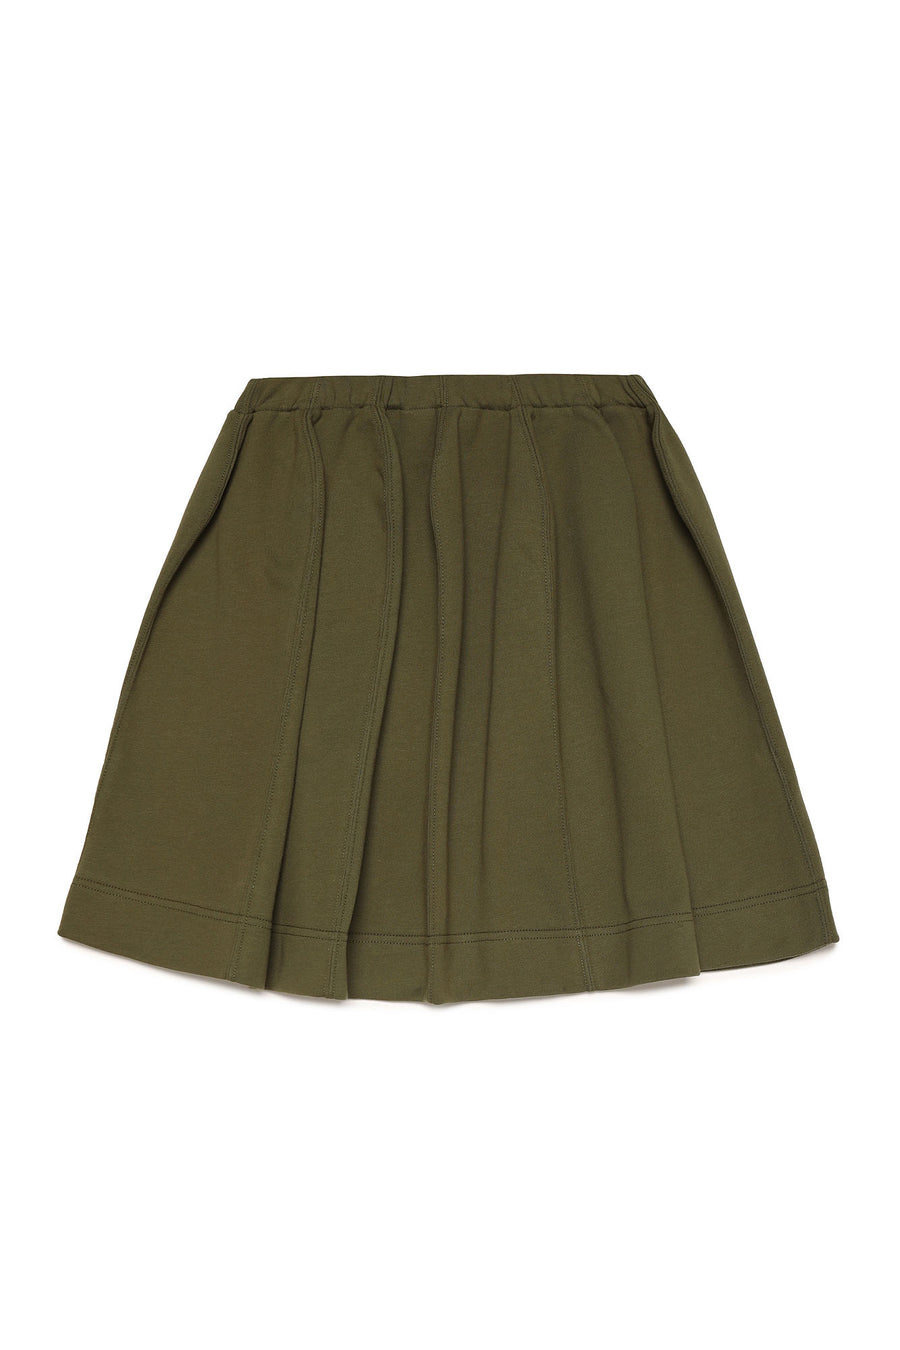 Khaki Logo Skirt by Marni